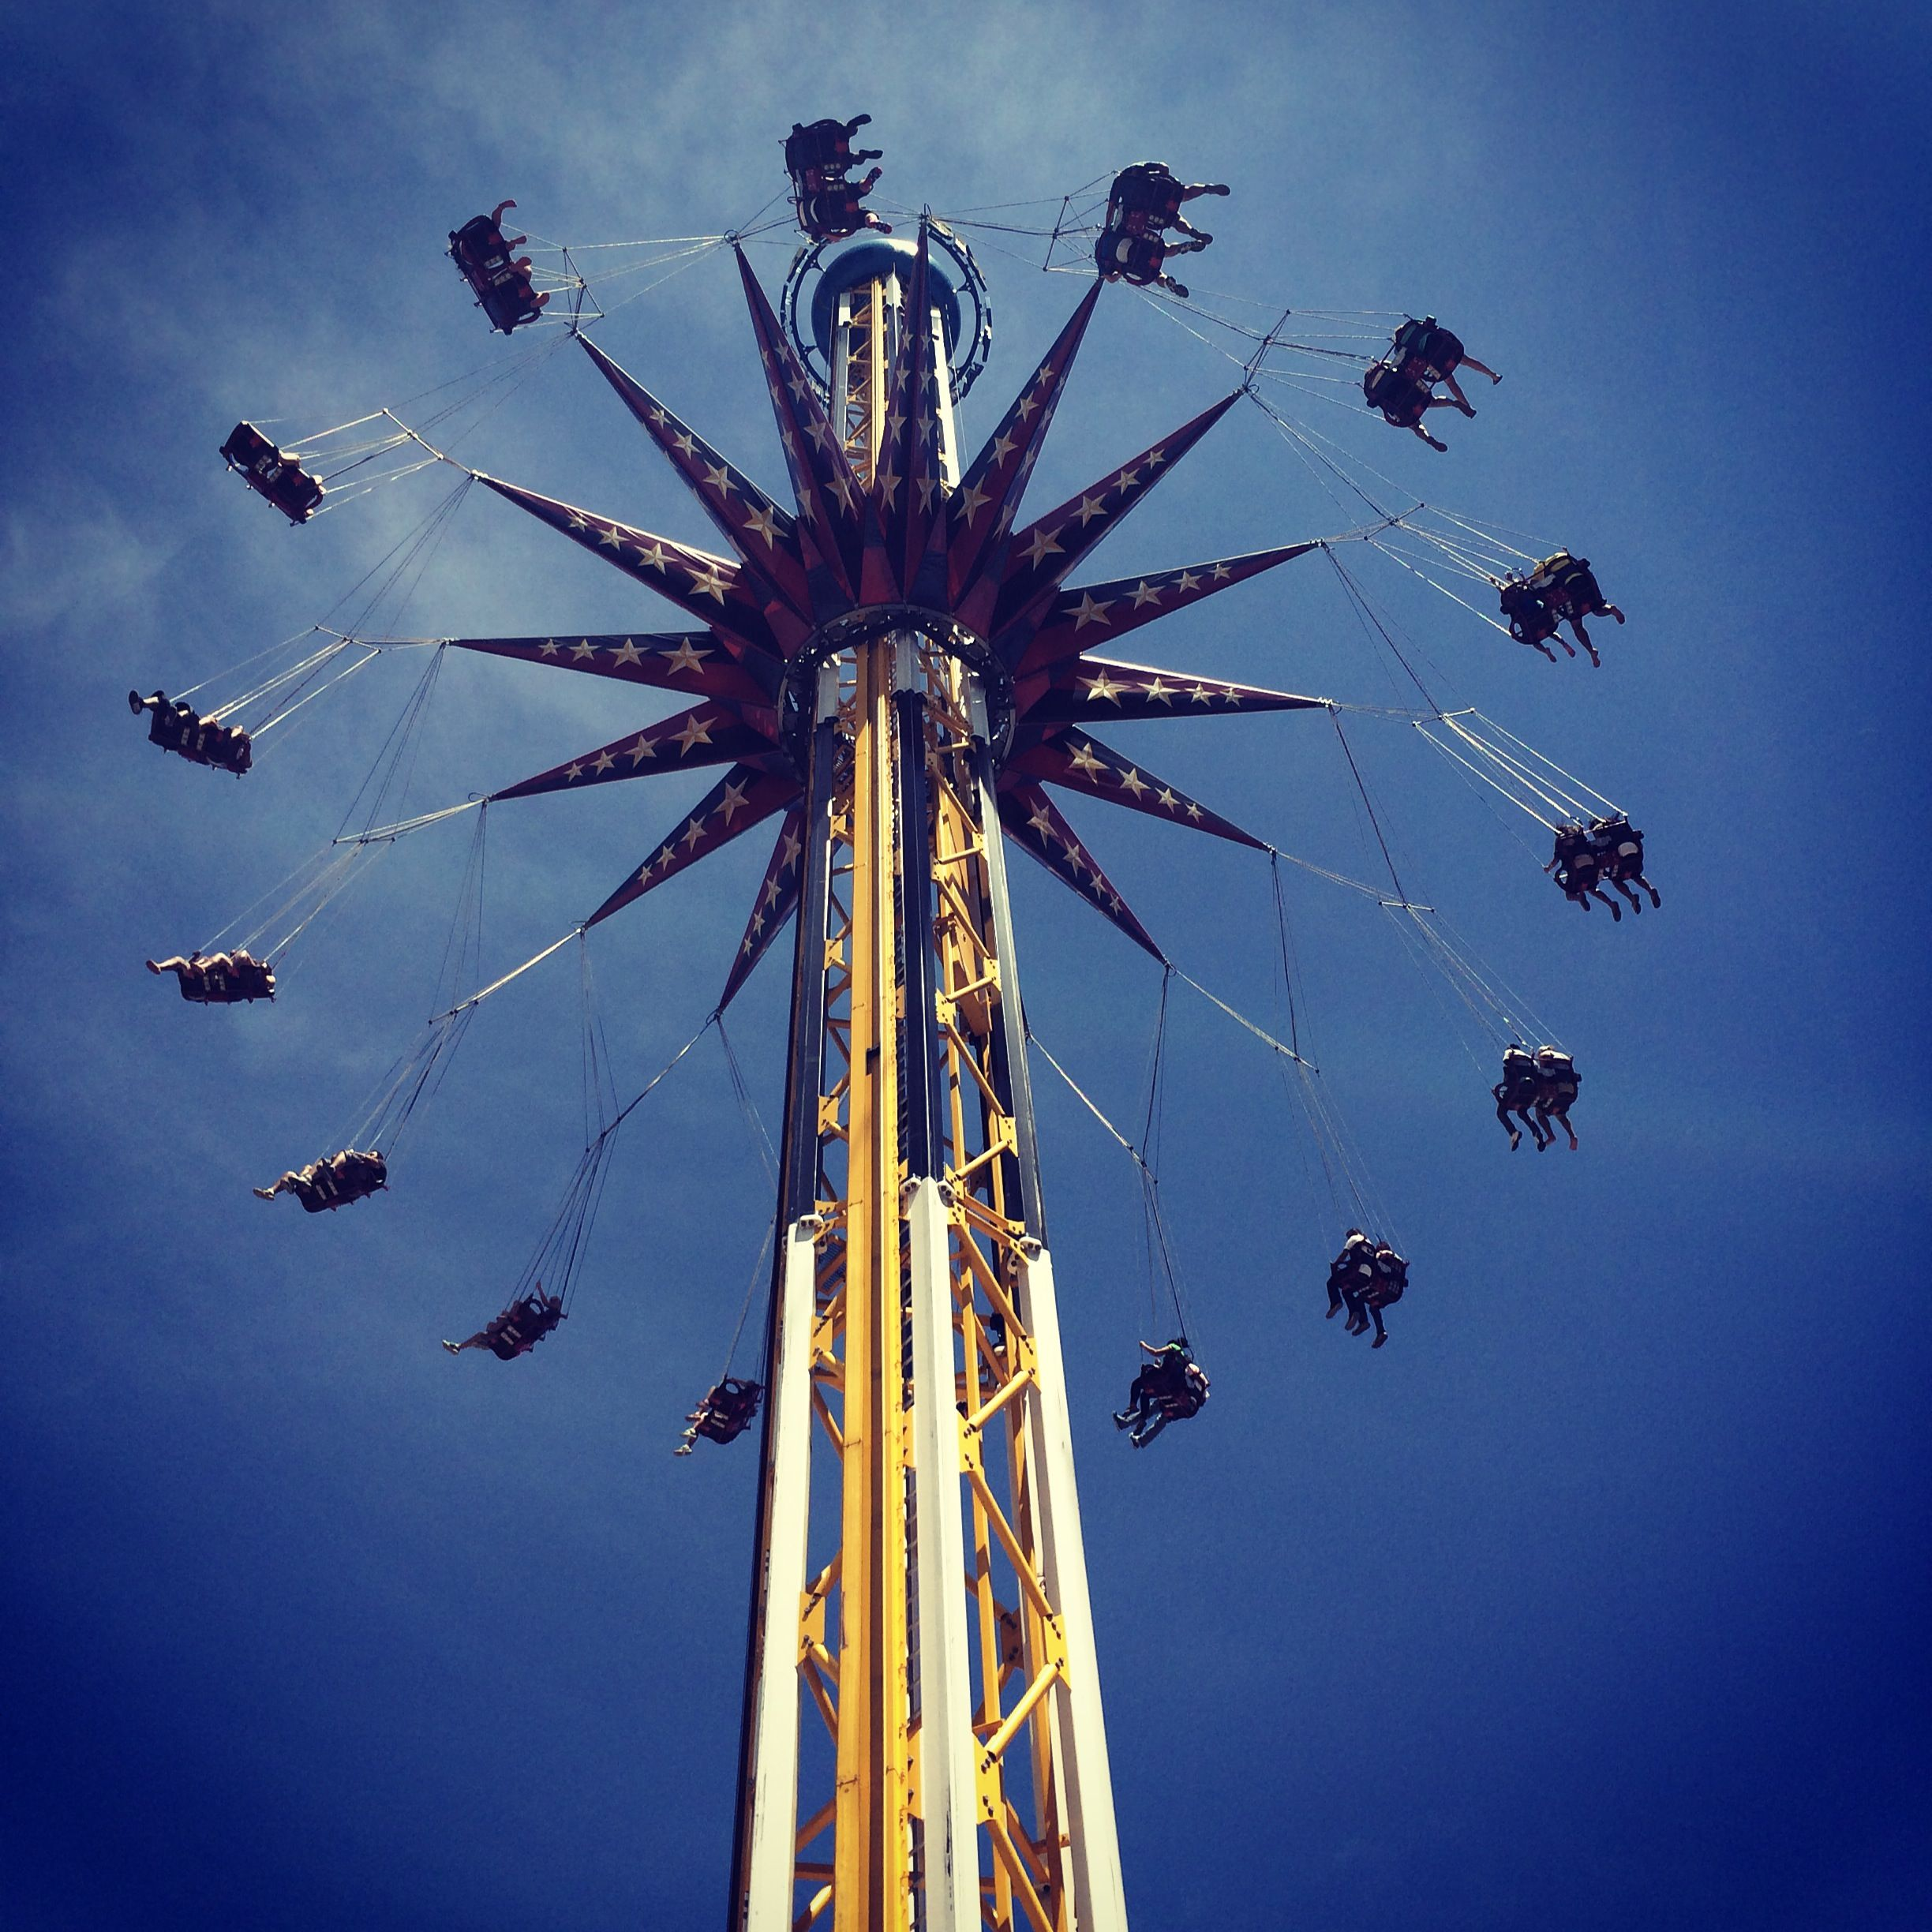 Travel America The American Experience| Serafini Amelia| SAVE on your day of family fun at six Flags Fiesta Texas!